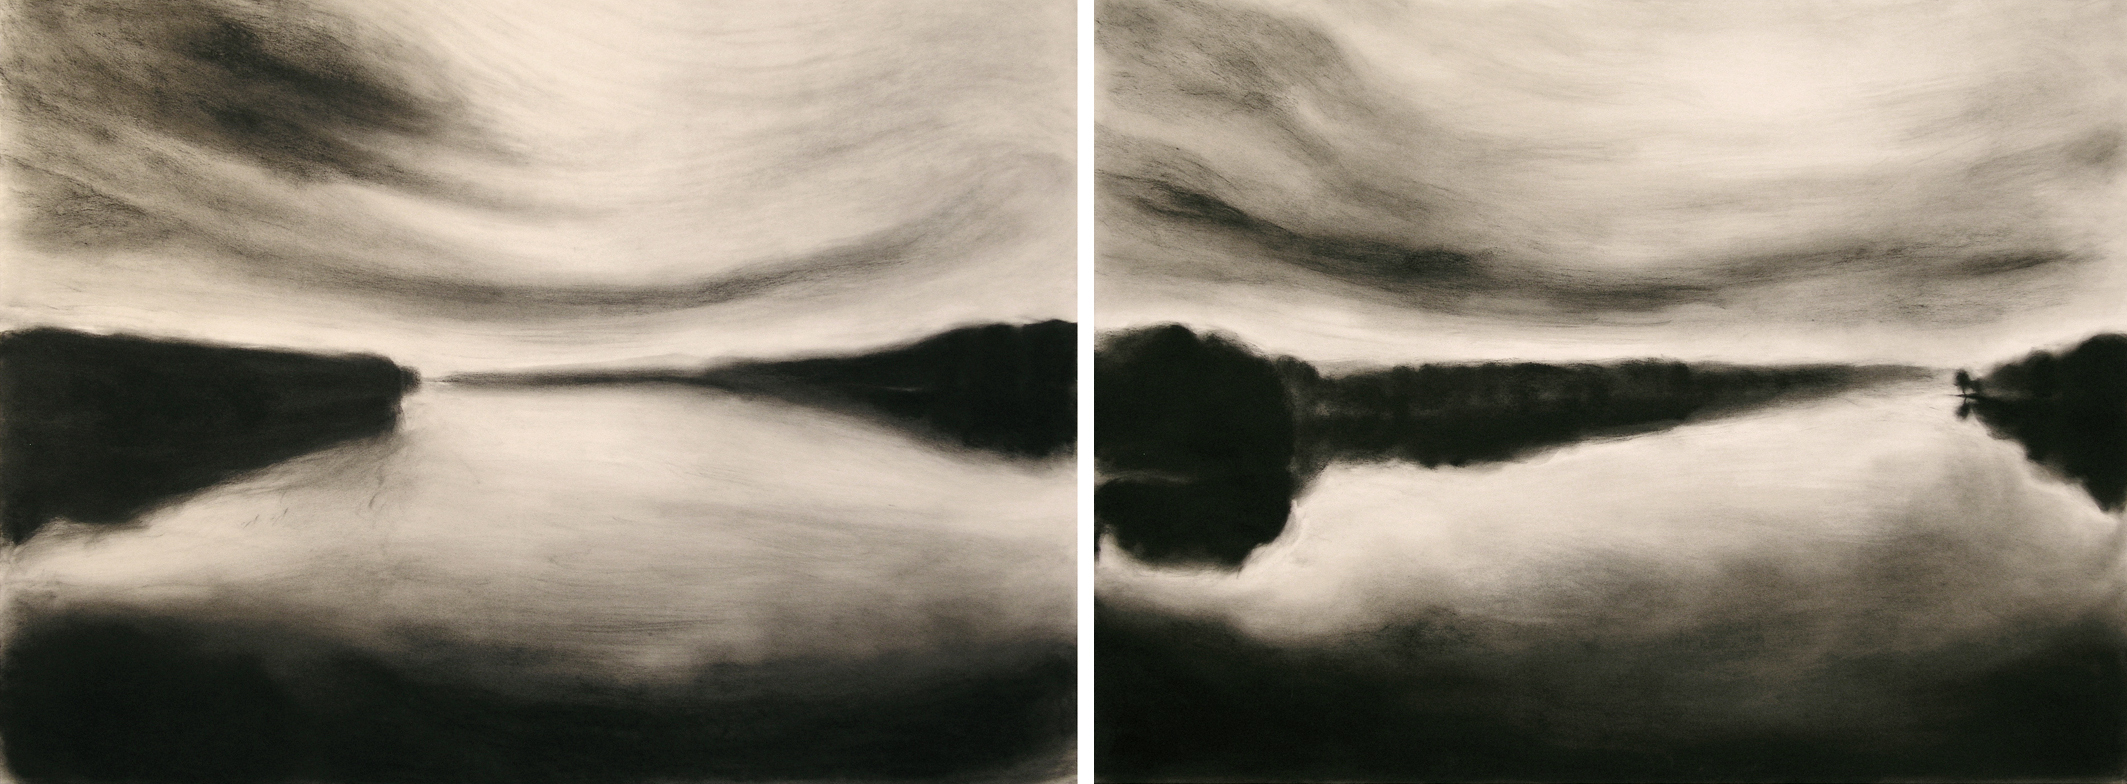 THE SHADOW THE RIVER KEEPS 2004, two panels @ 22 x 60 inches private collections © 2016, Michael Kirk all rights reserved